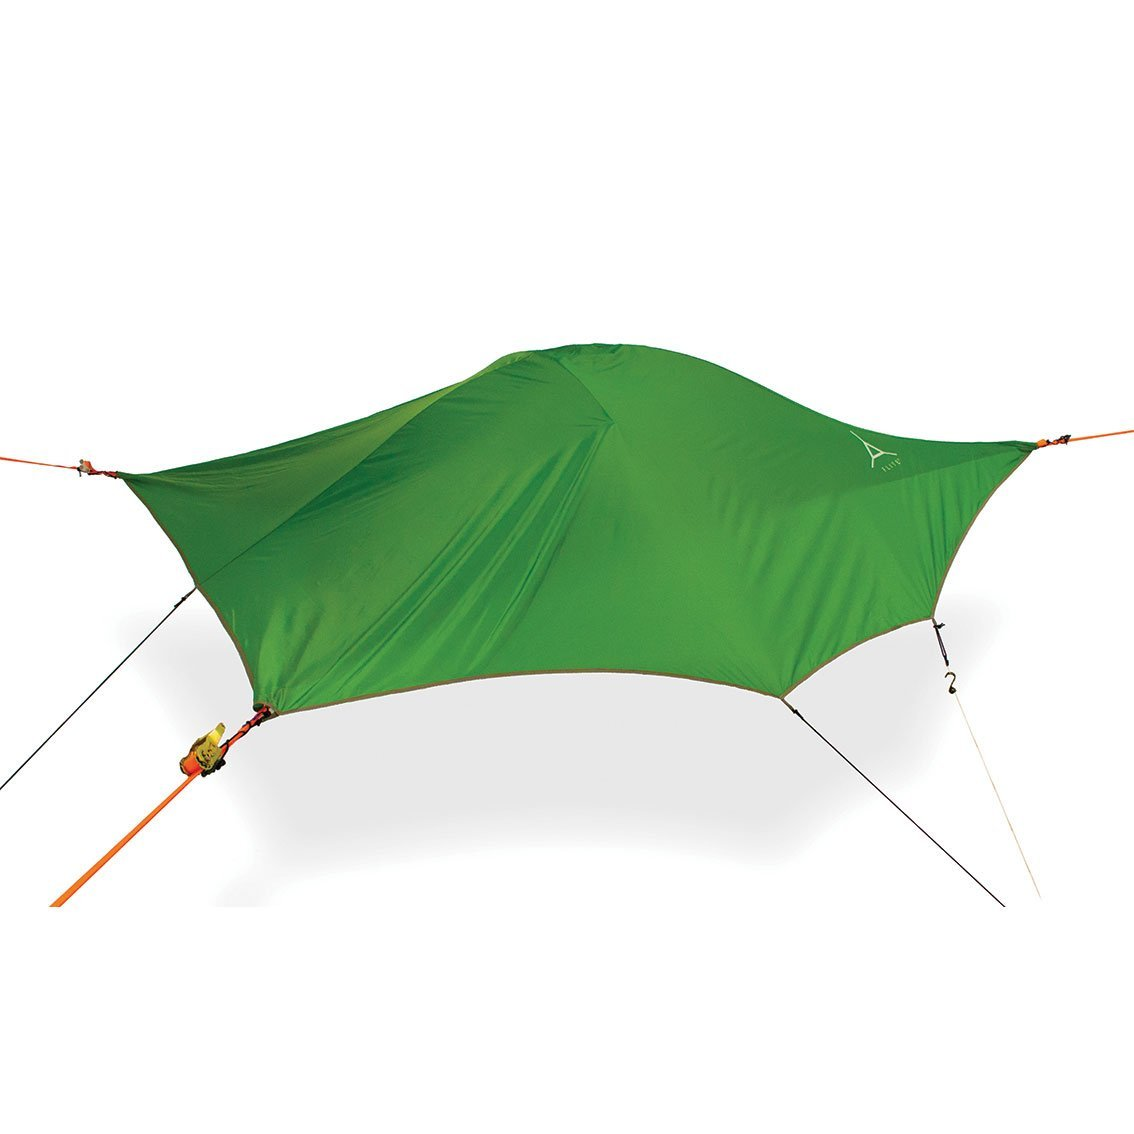 Tentsile | Flite Tree Tent | 2 Man Lightweight Suspended Hammock Tent | Forest Green